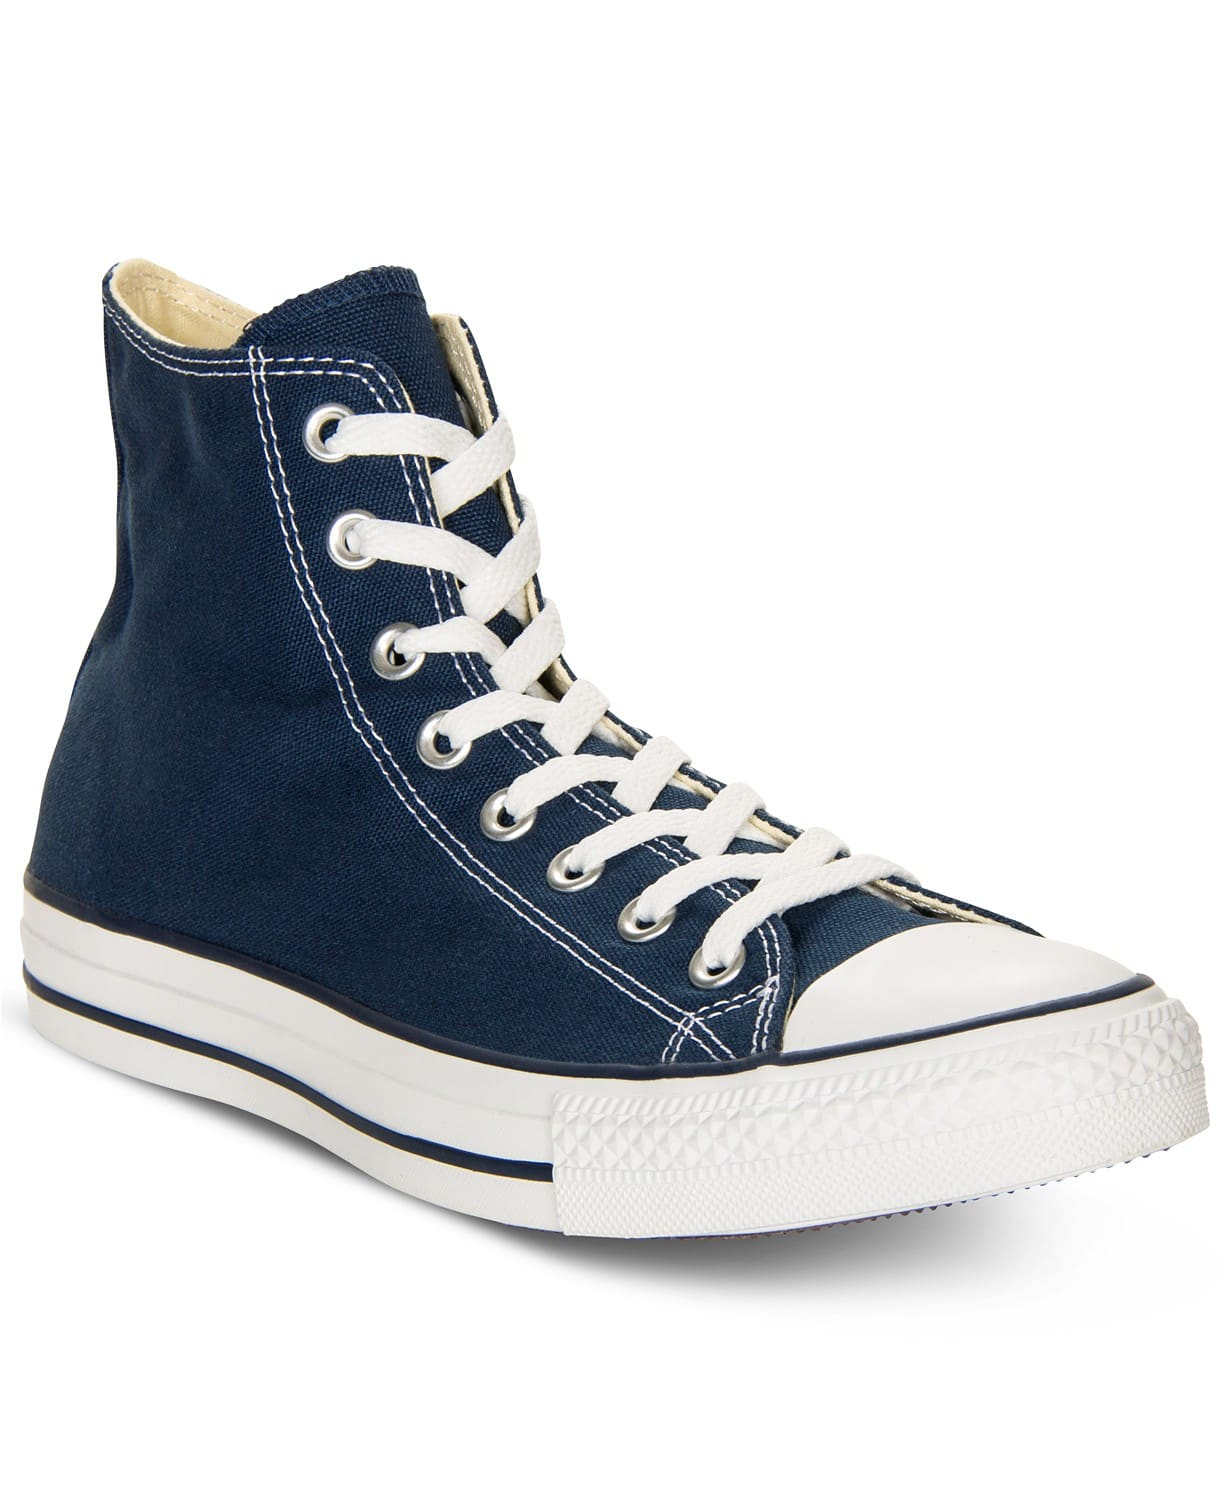 dccfab75999a Converse Men s Chuck Taylor High Top Sneakers (Blue) - Slickdeals.net